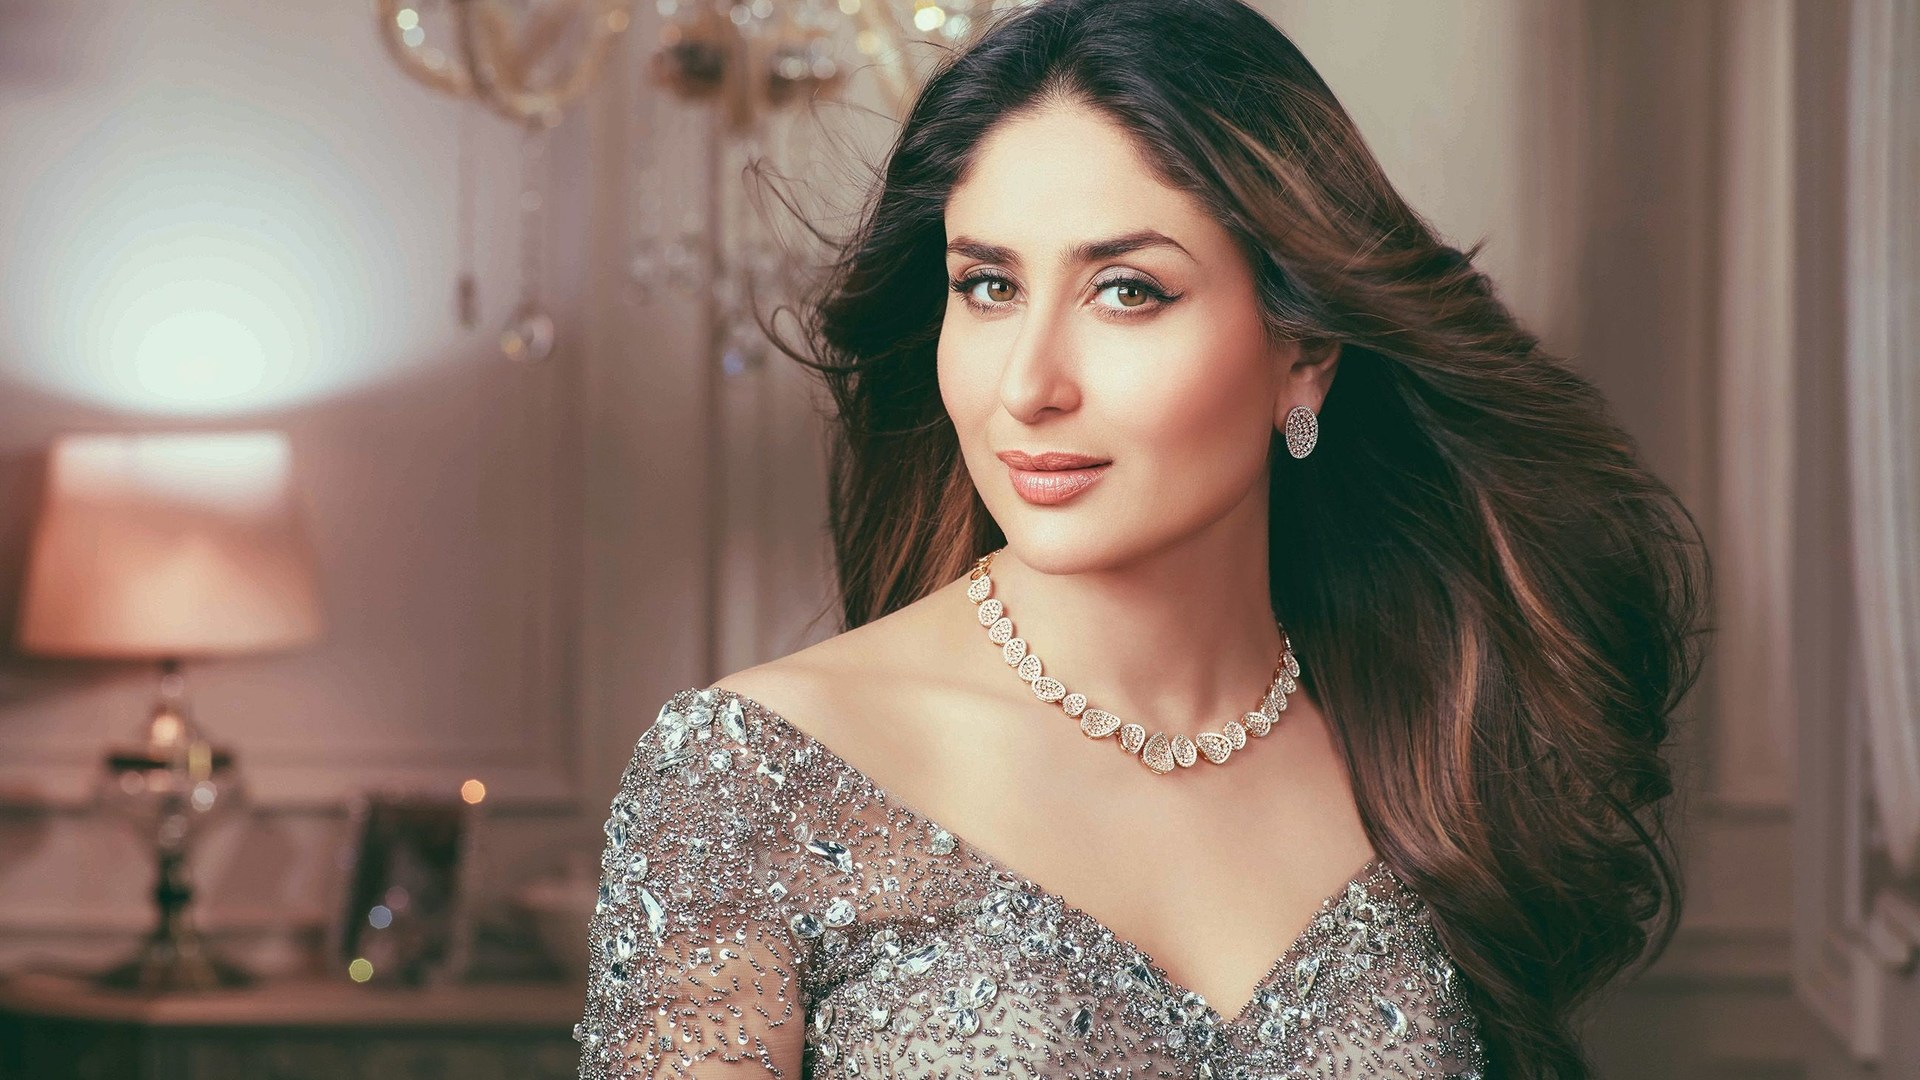 This is the latest 2019 photoshoot of kareena kapoor khan. she is looking so hot in this image